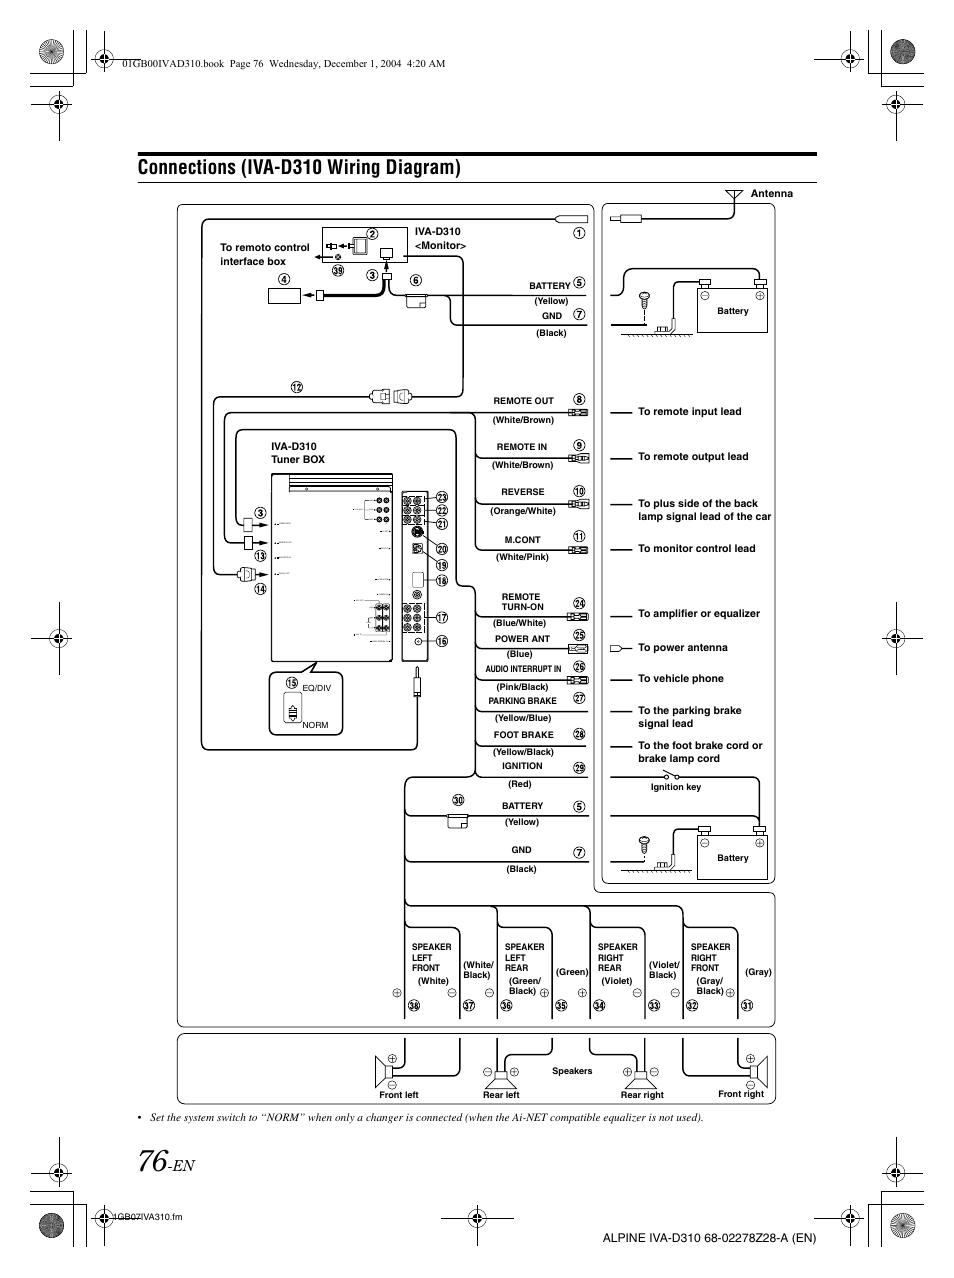 alpine iva d310 page78?resize\\\\\\\\\\\\\\\=665%2C891 john dee 410 loader wiring diagram john wiring diagrams collection lionel 164 log loader wiring diagram at nearapp.co